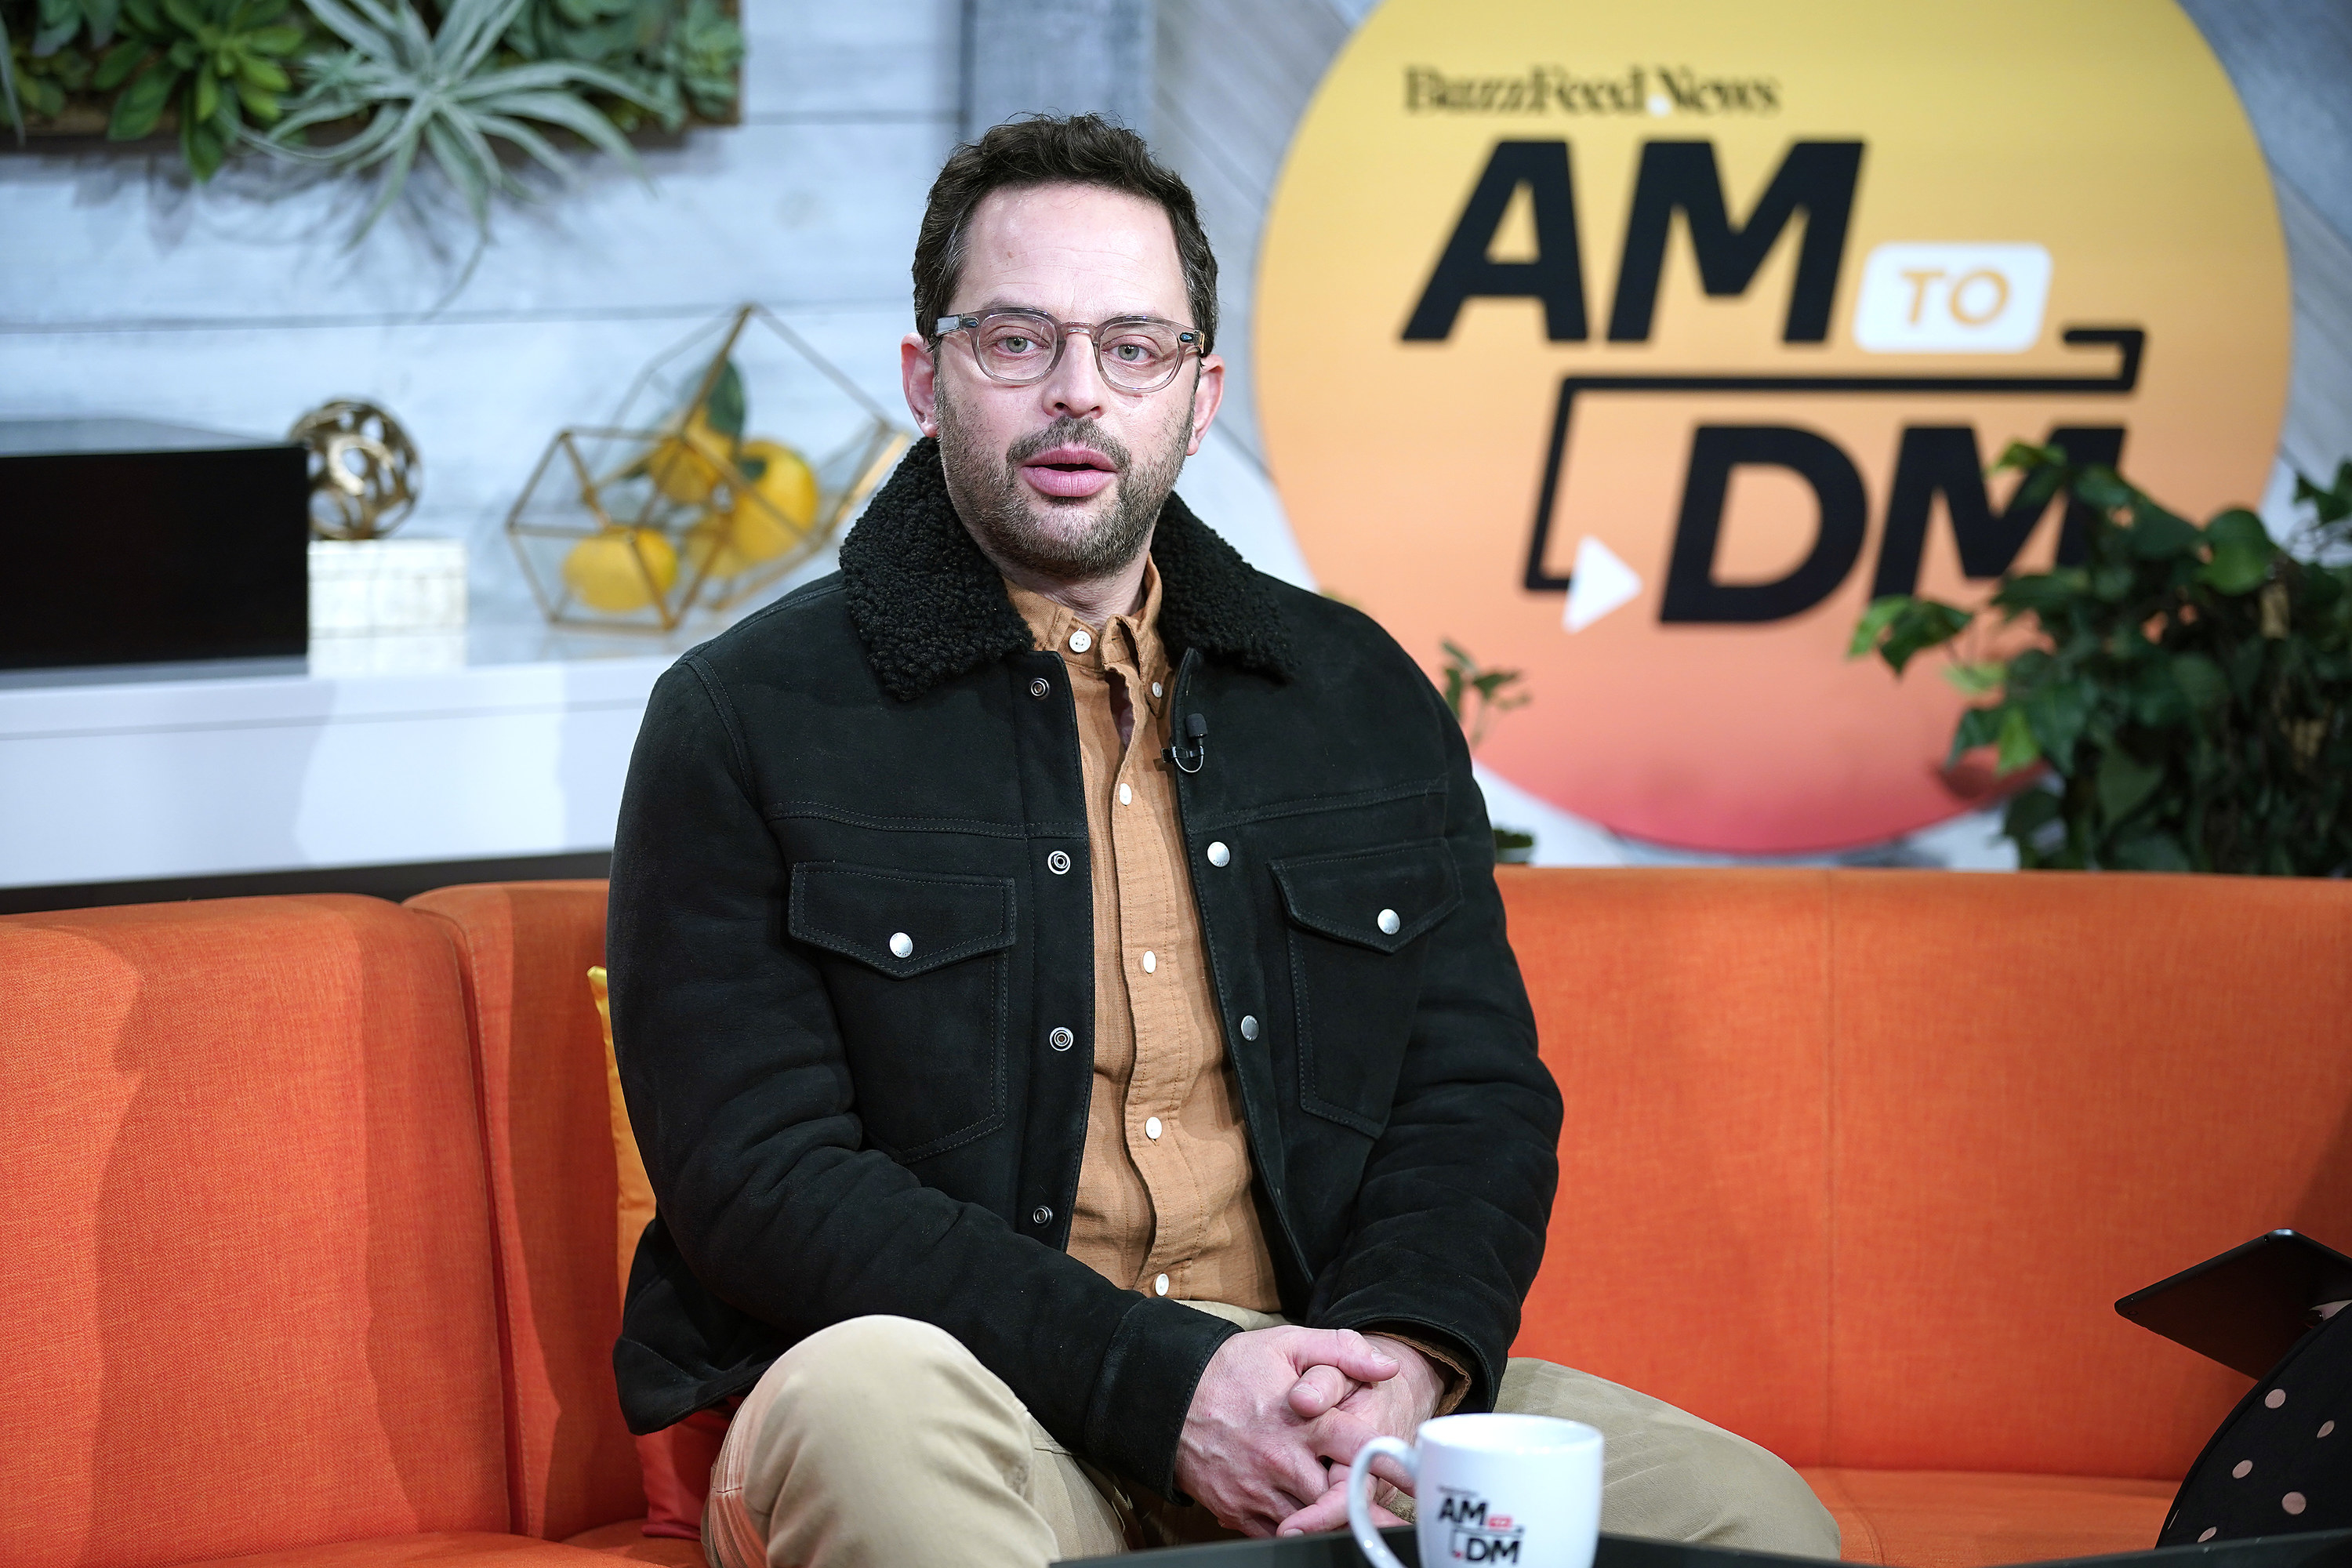 """Nick Kroll visits BuzzFeed's """"AM To DM"""" on February 13, 2020 in New York City"""